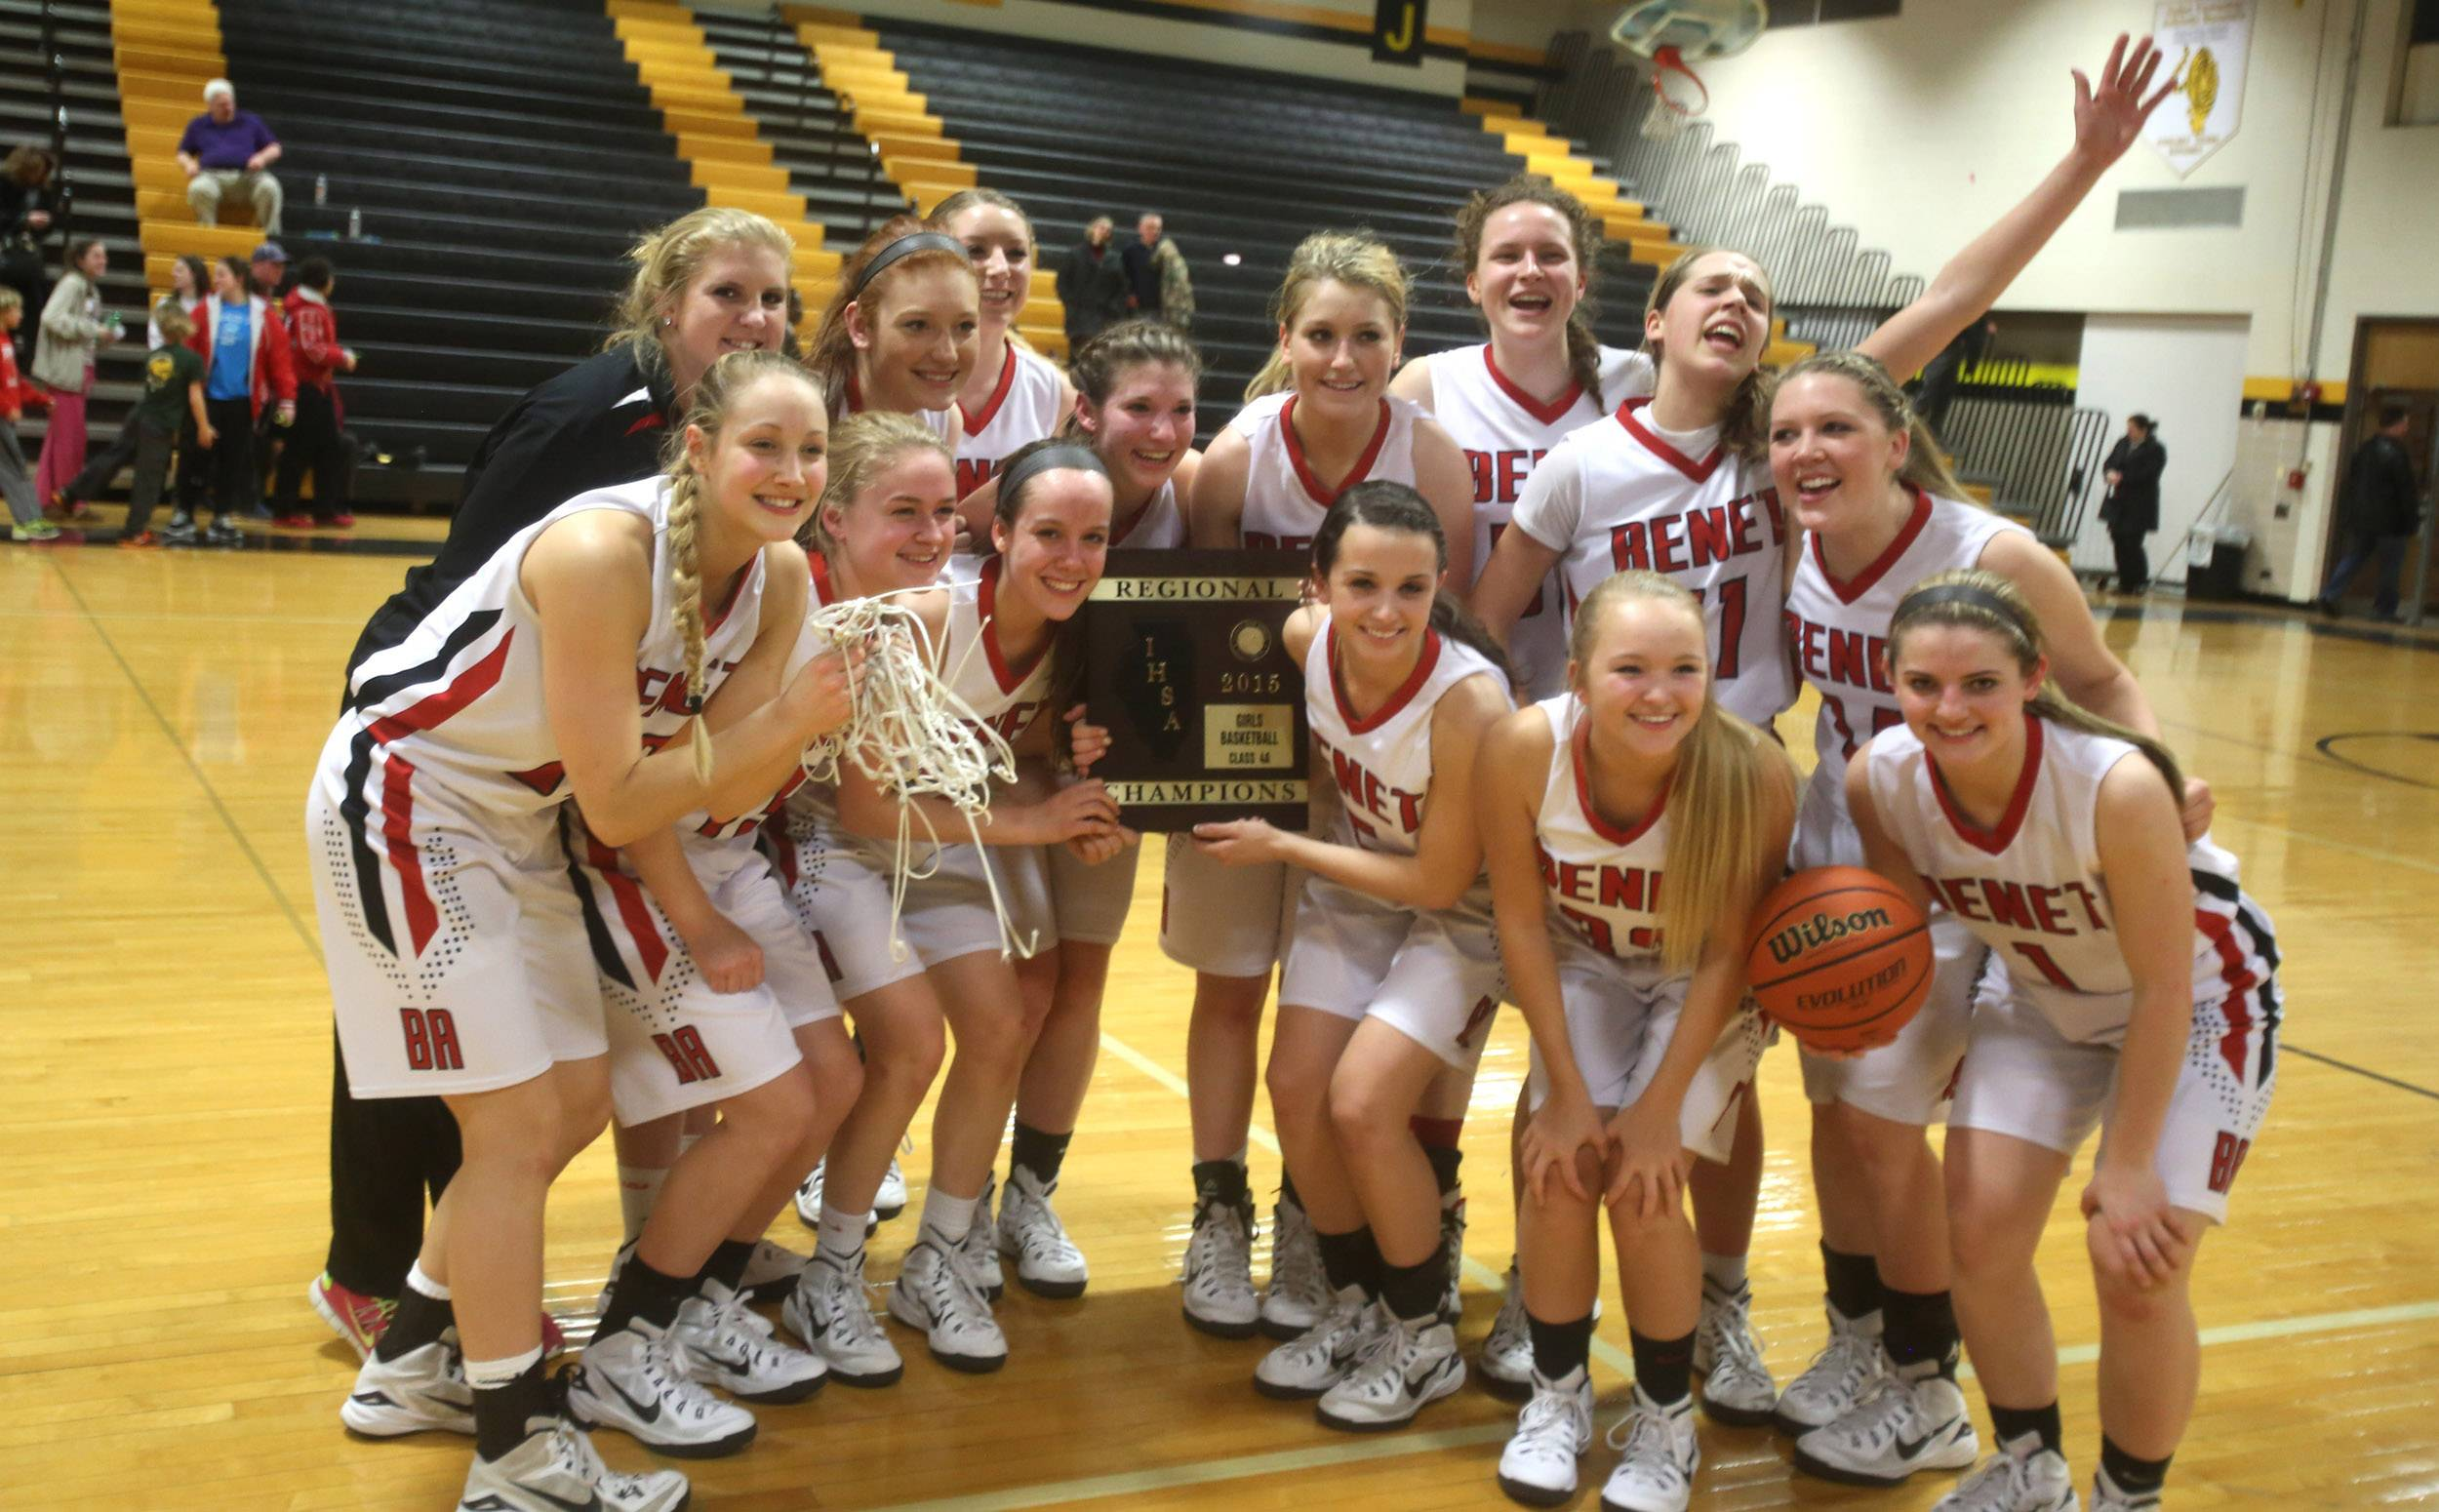 Benet players celebrate after winning the Joliet West regional girls basketball championship.